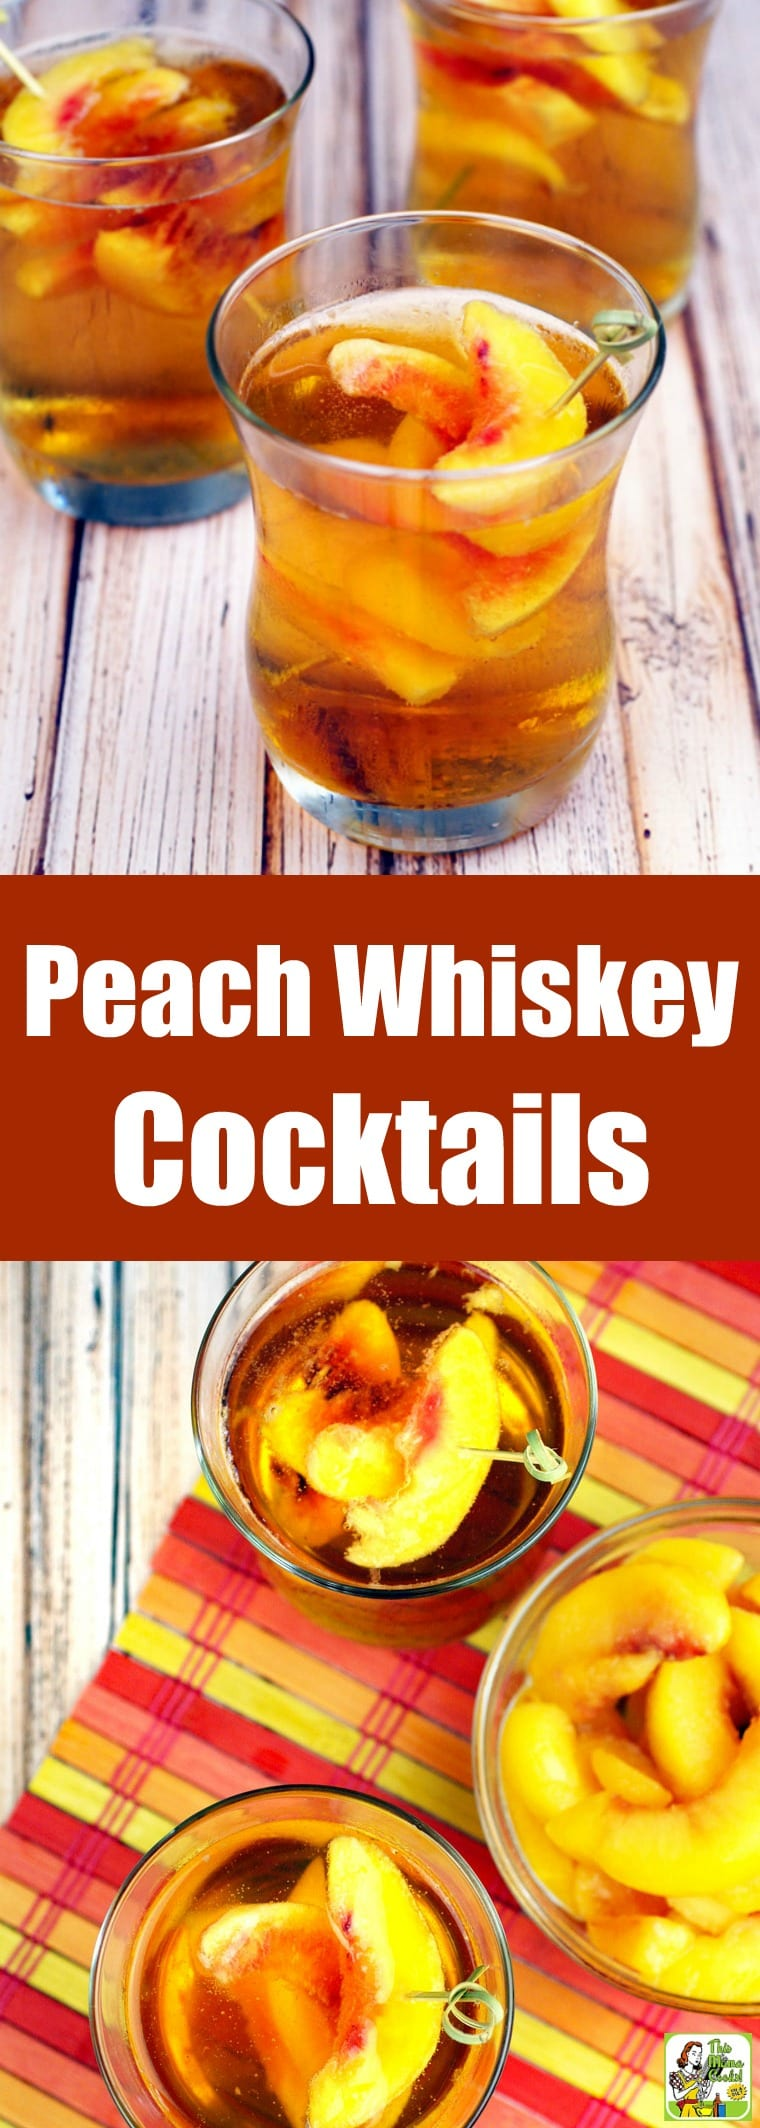 Peach Whiskey Cocktail Recipe